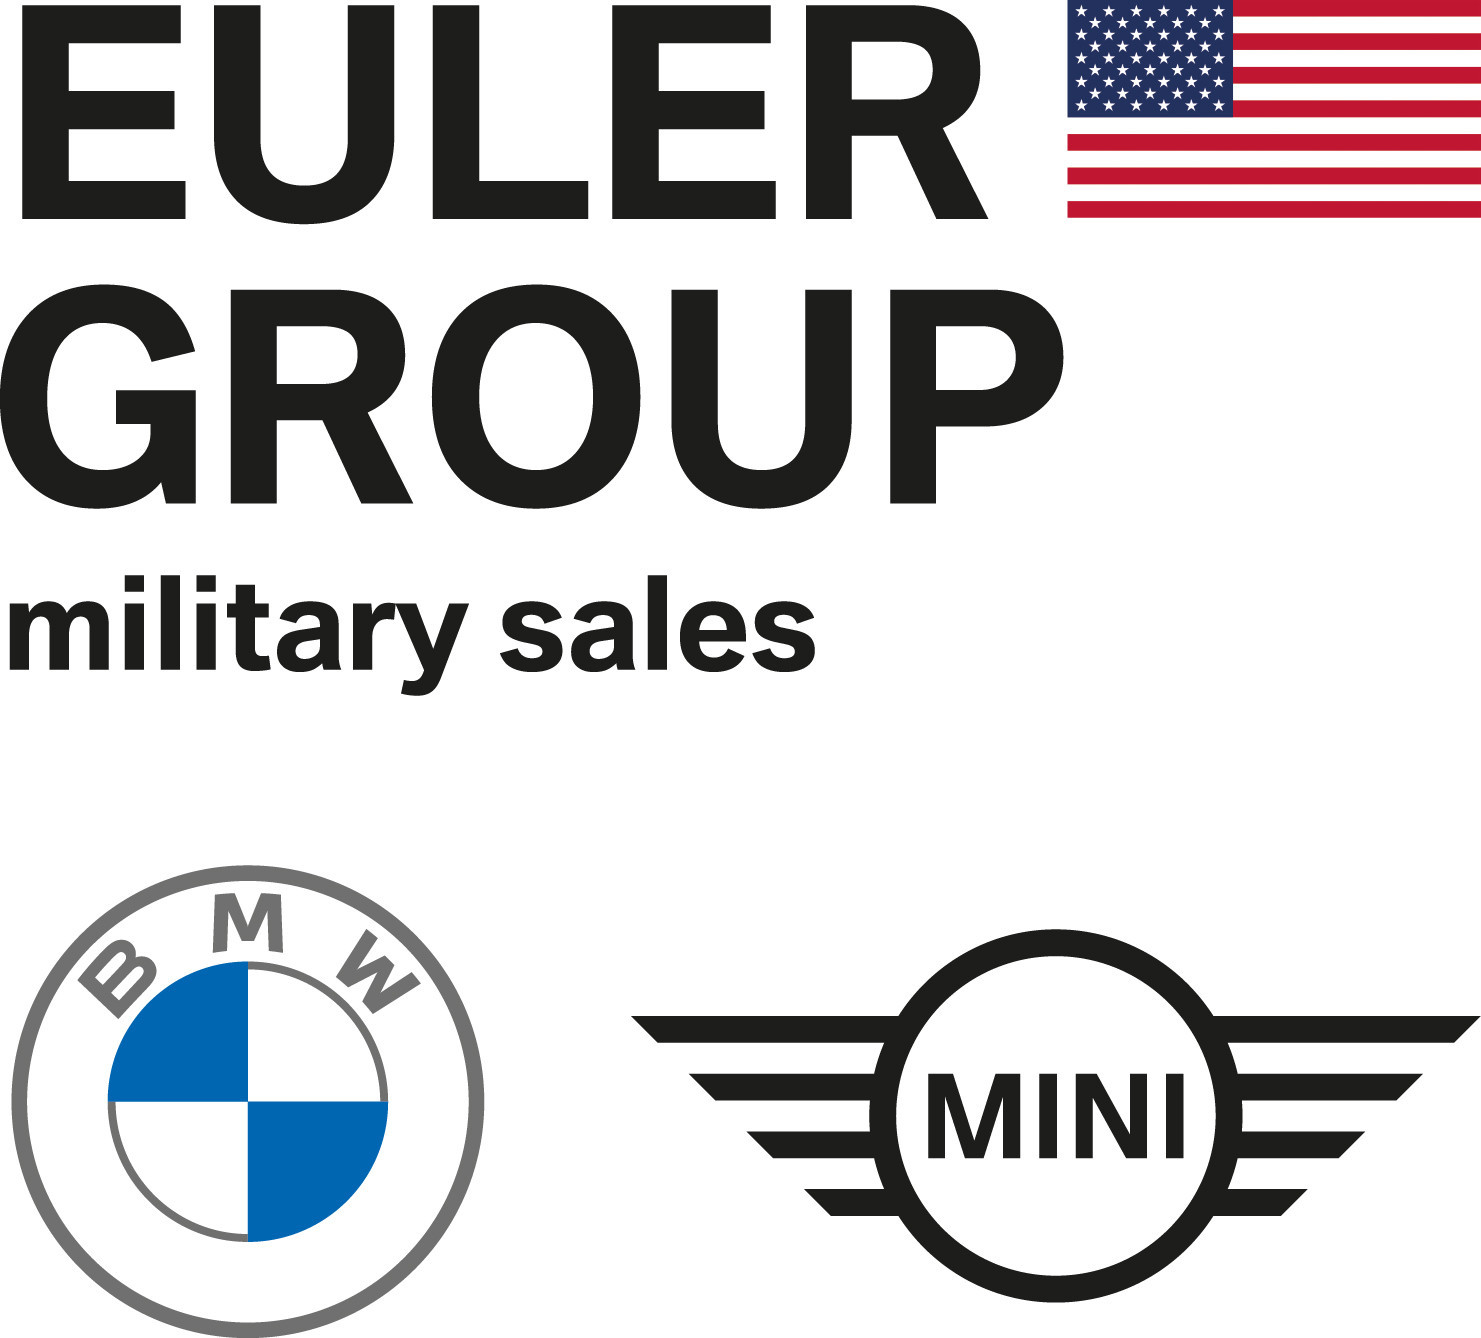 csm_Logo-EULER-GROUP_BMW_MINI_2020_sw_3260983c97.jpg